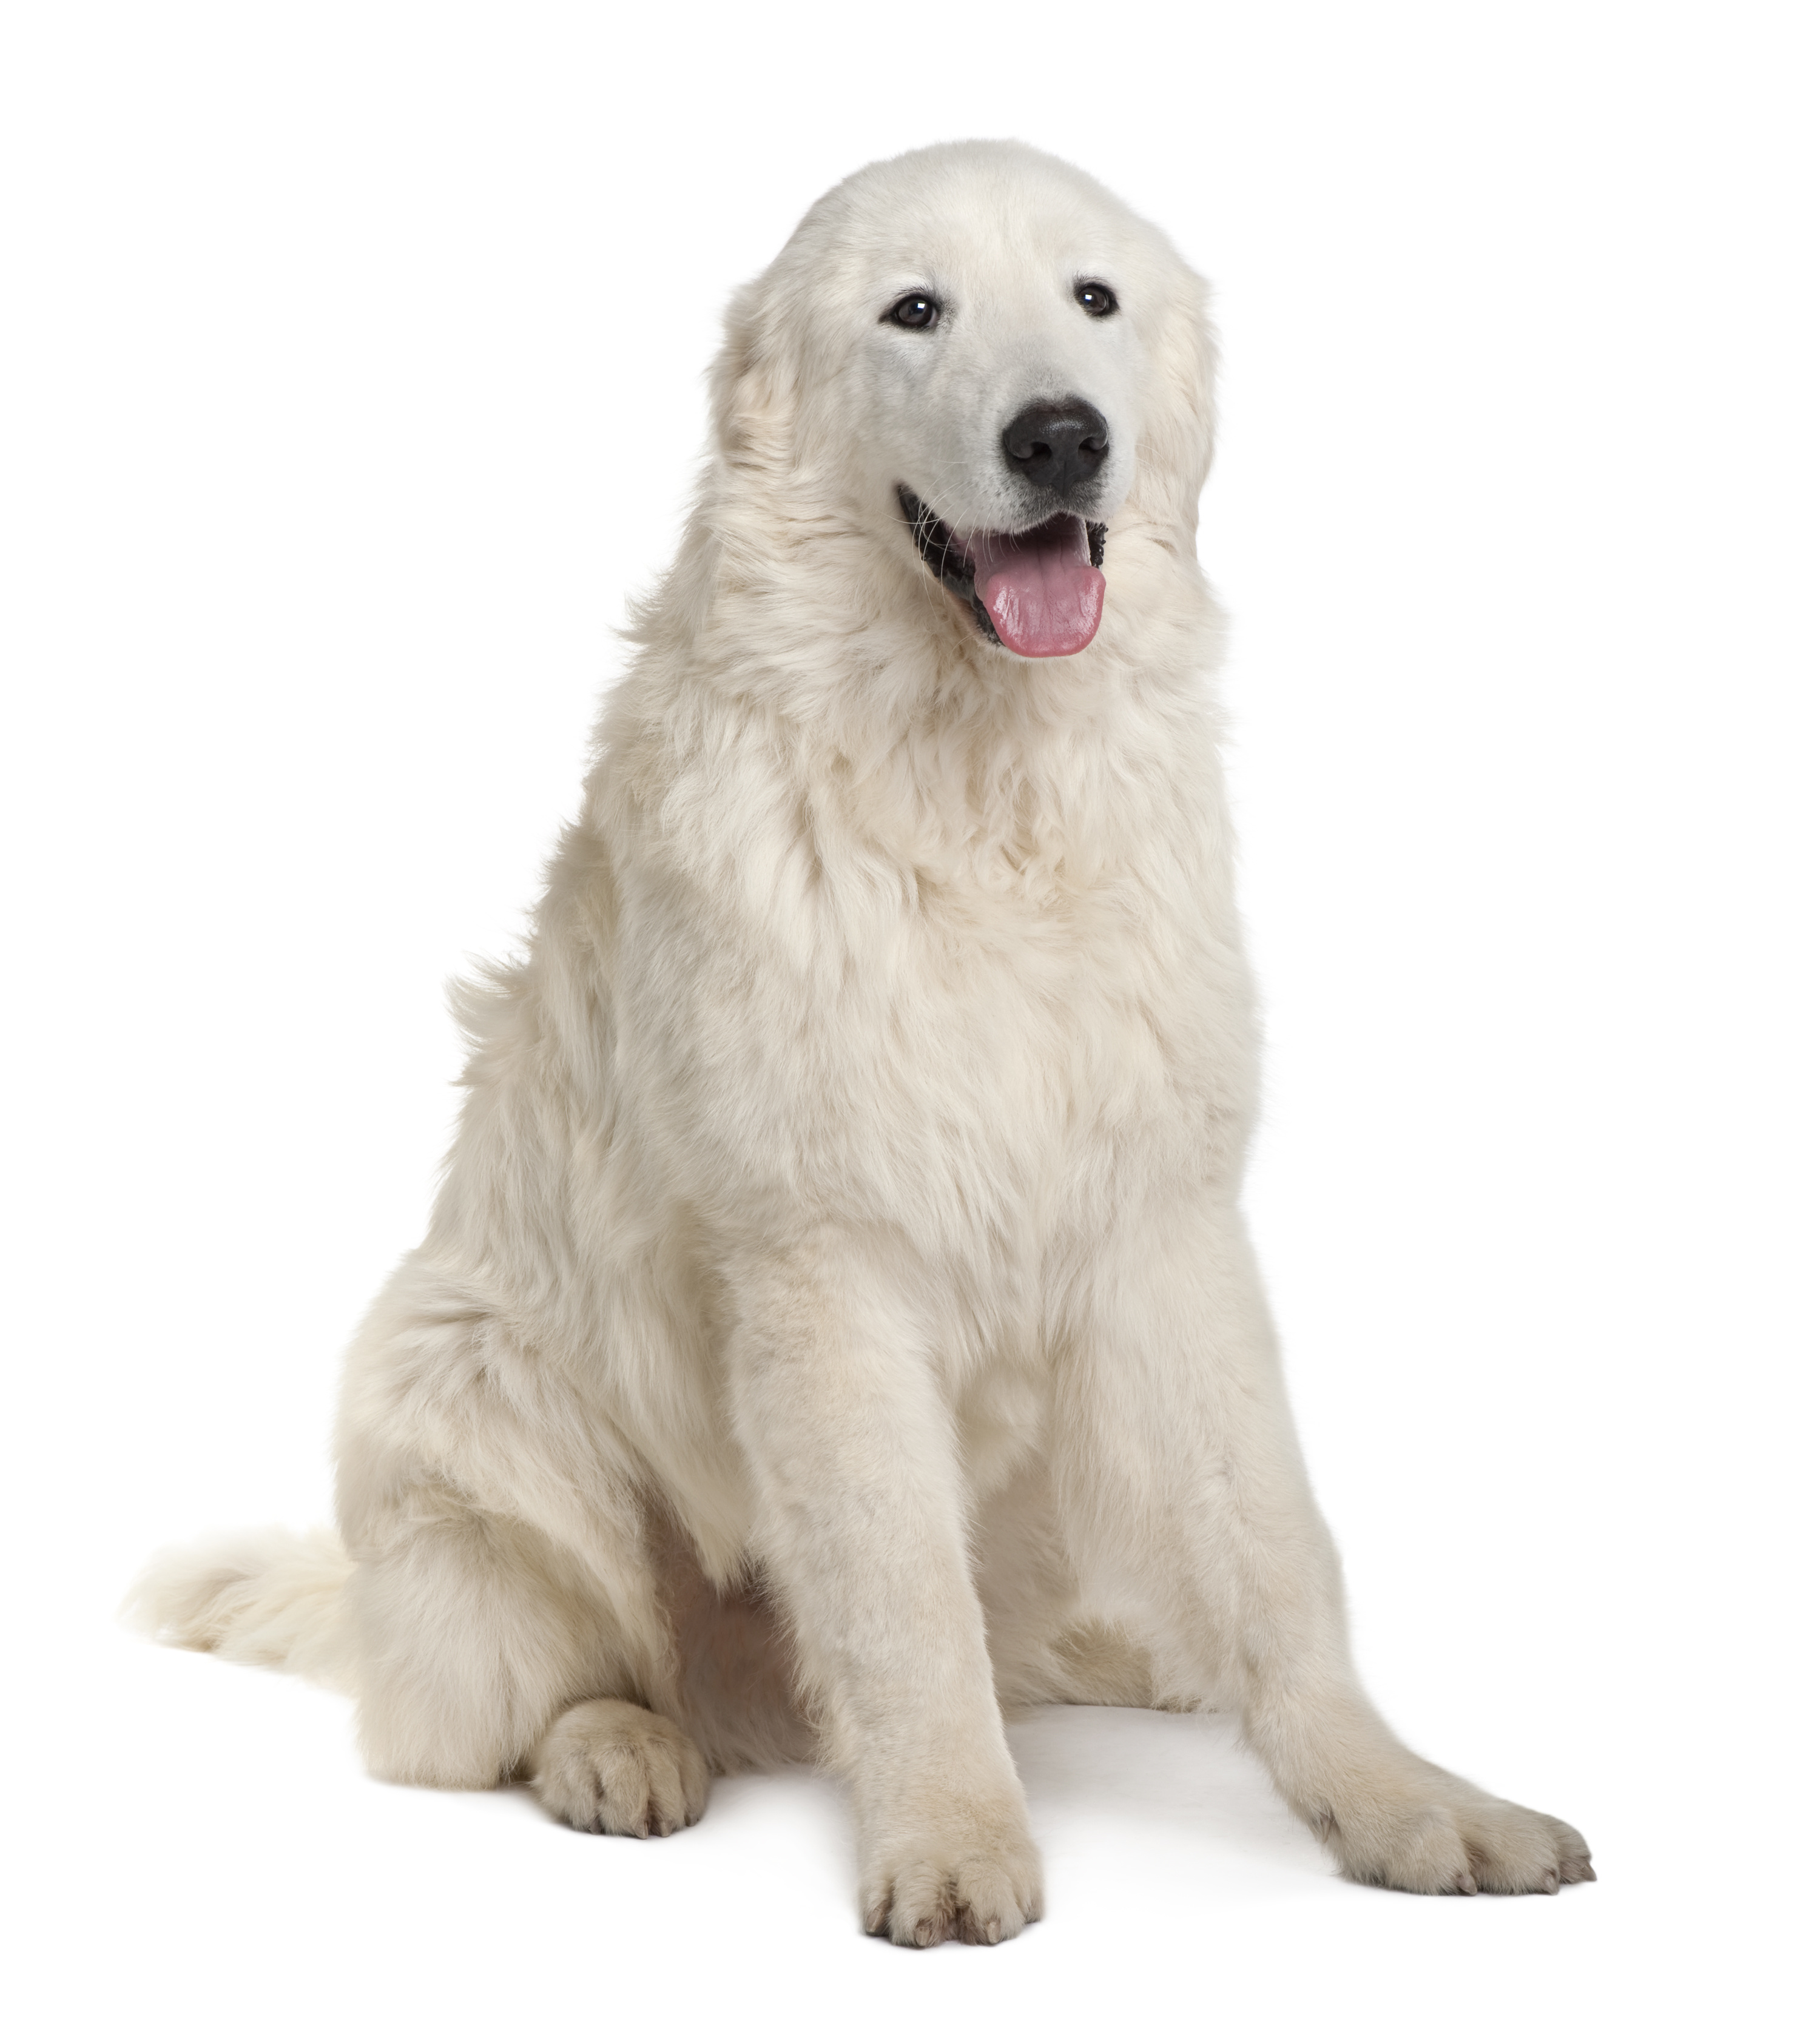 Mastino Abruzzese sitting in front of a white background